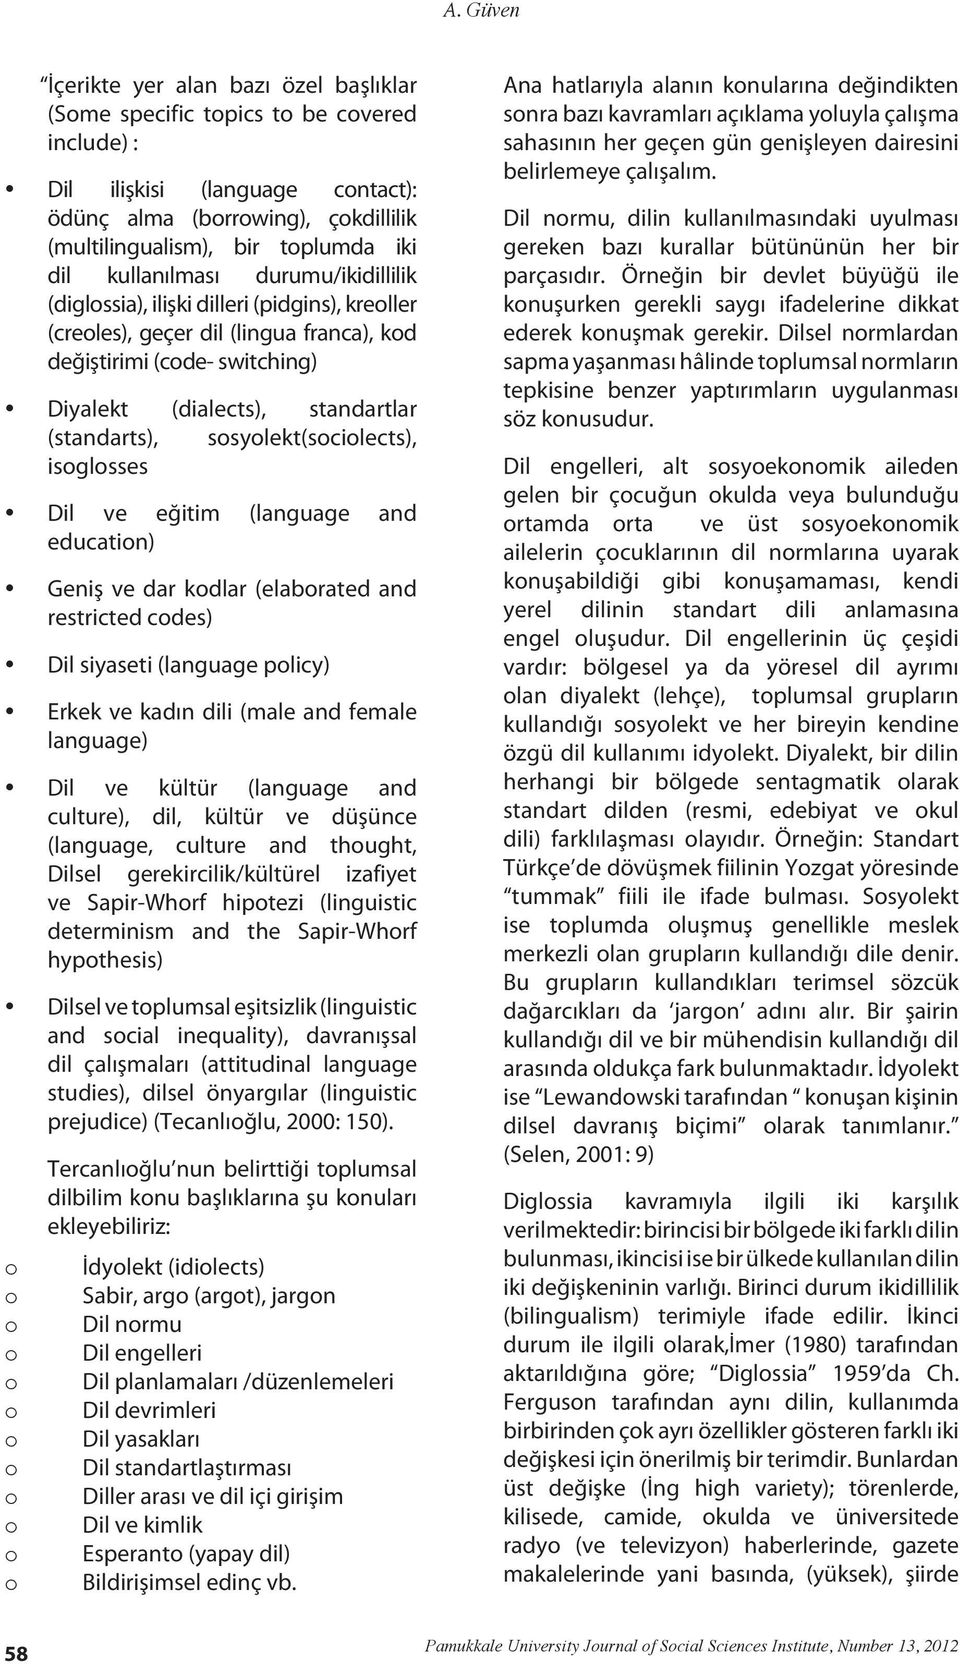 ssylekt(scilects), isglsses Dil ve eğitim (language and educatin) Geniş ve dar kdlar (elabrated and restricted cdes) Dil siyaseti (language plicy) Erkek ve kadın dili (male and female language) Dil